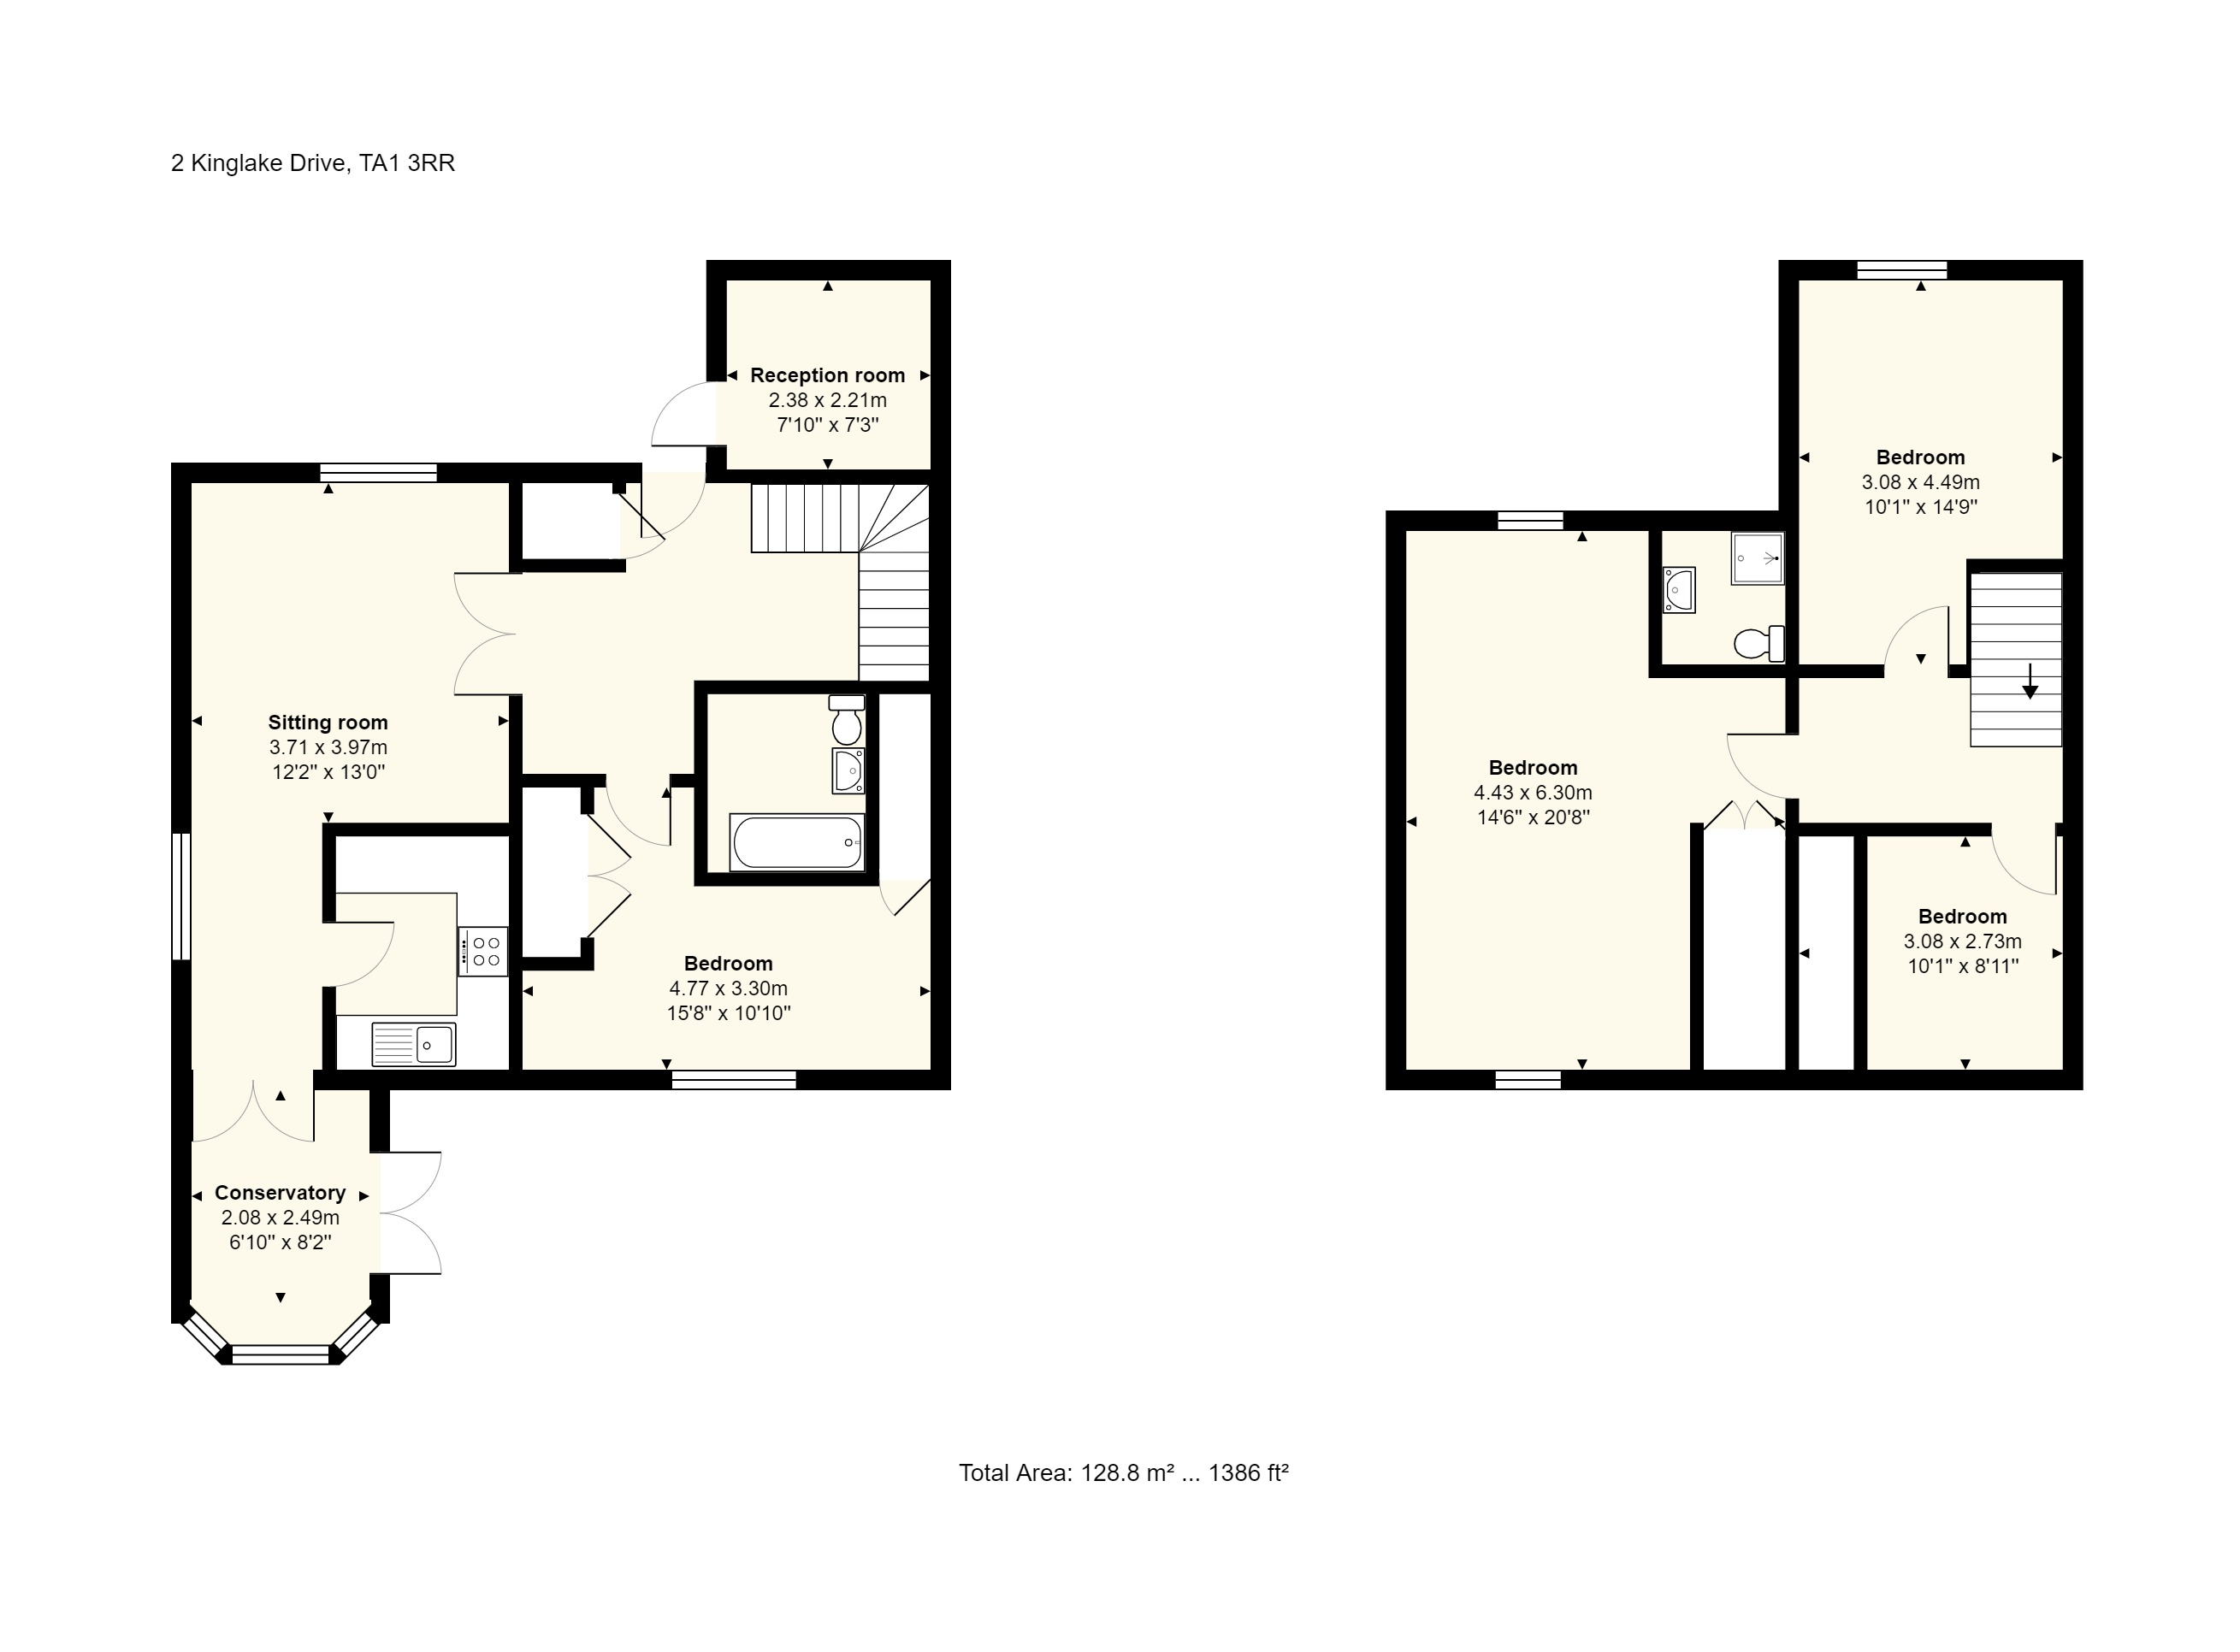 2 Kinglake Drive Floorplan